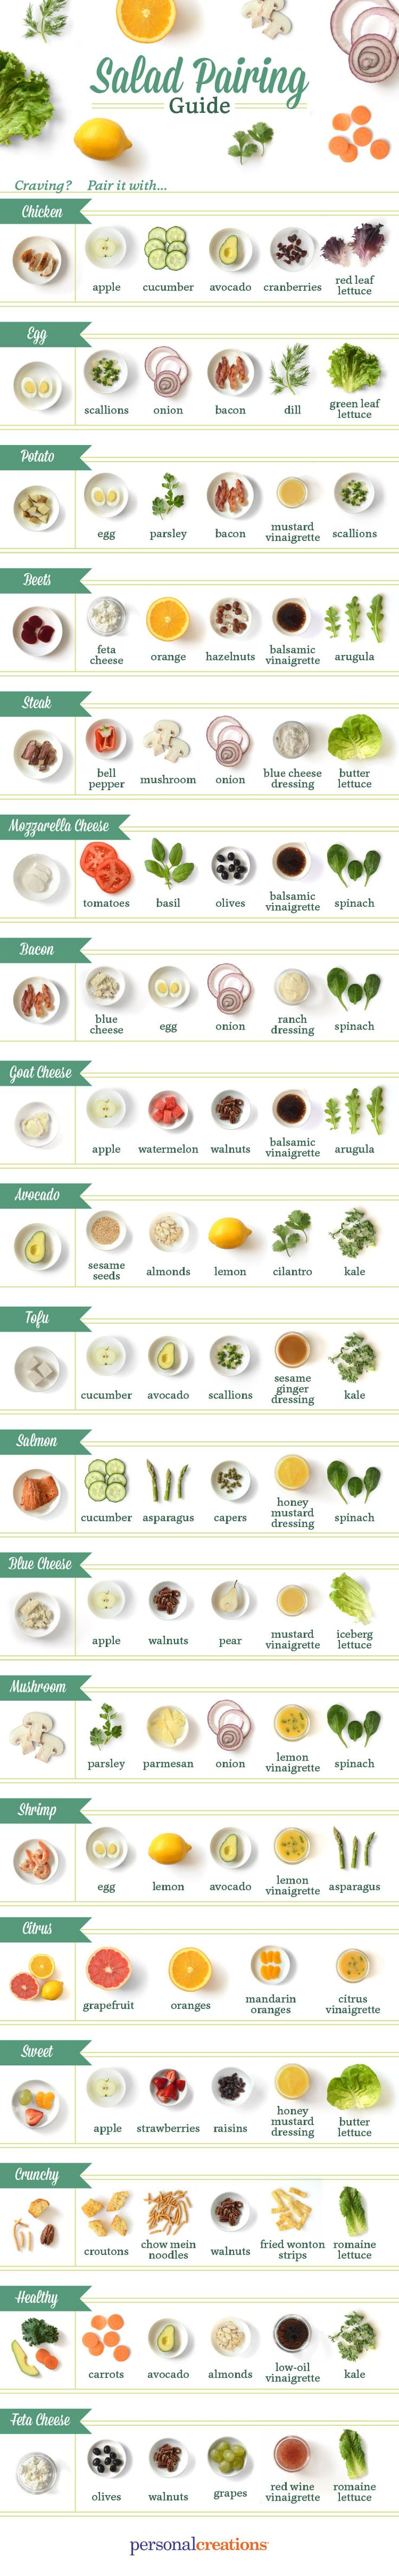 Salad Pairing Guide! via https://i.imgur.com/VZTHcnG.jpg By Ikinhaszkarmakplx2 On May 28, 2016 at 04:41PM, Also Find More Infographics at @...